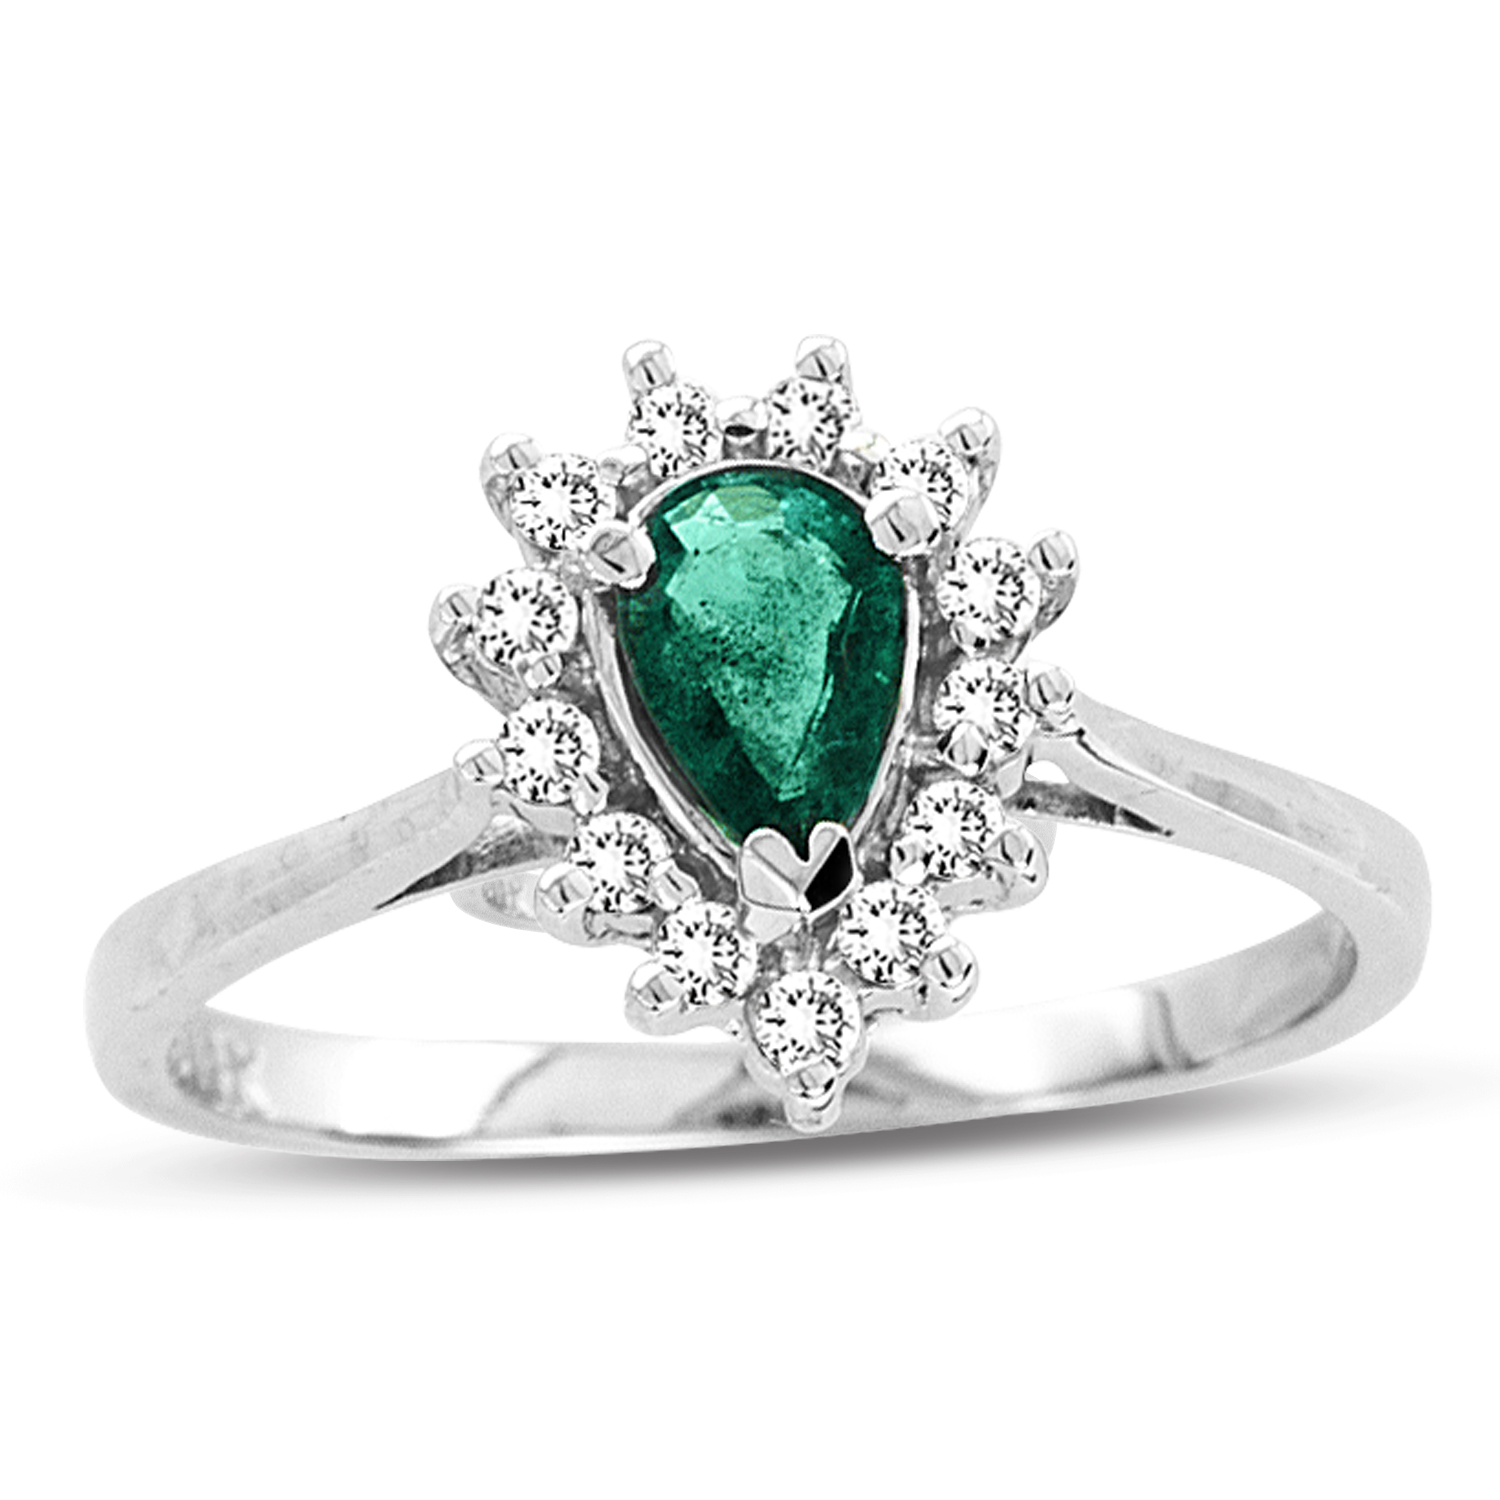 0.53ct tw Pear Shaped Emerald and Diamond Ring in 14k Gold